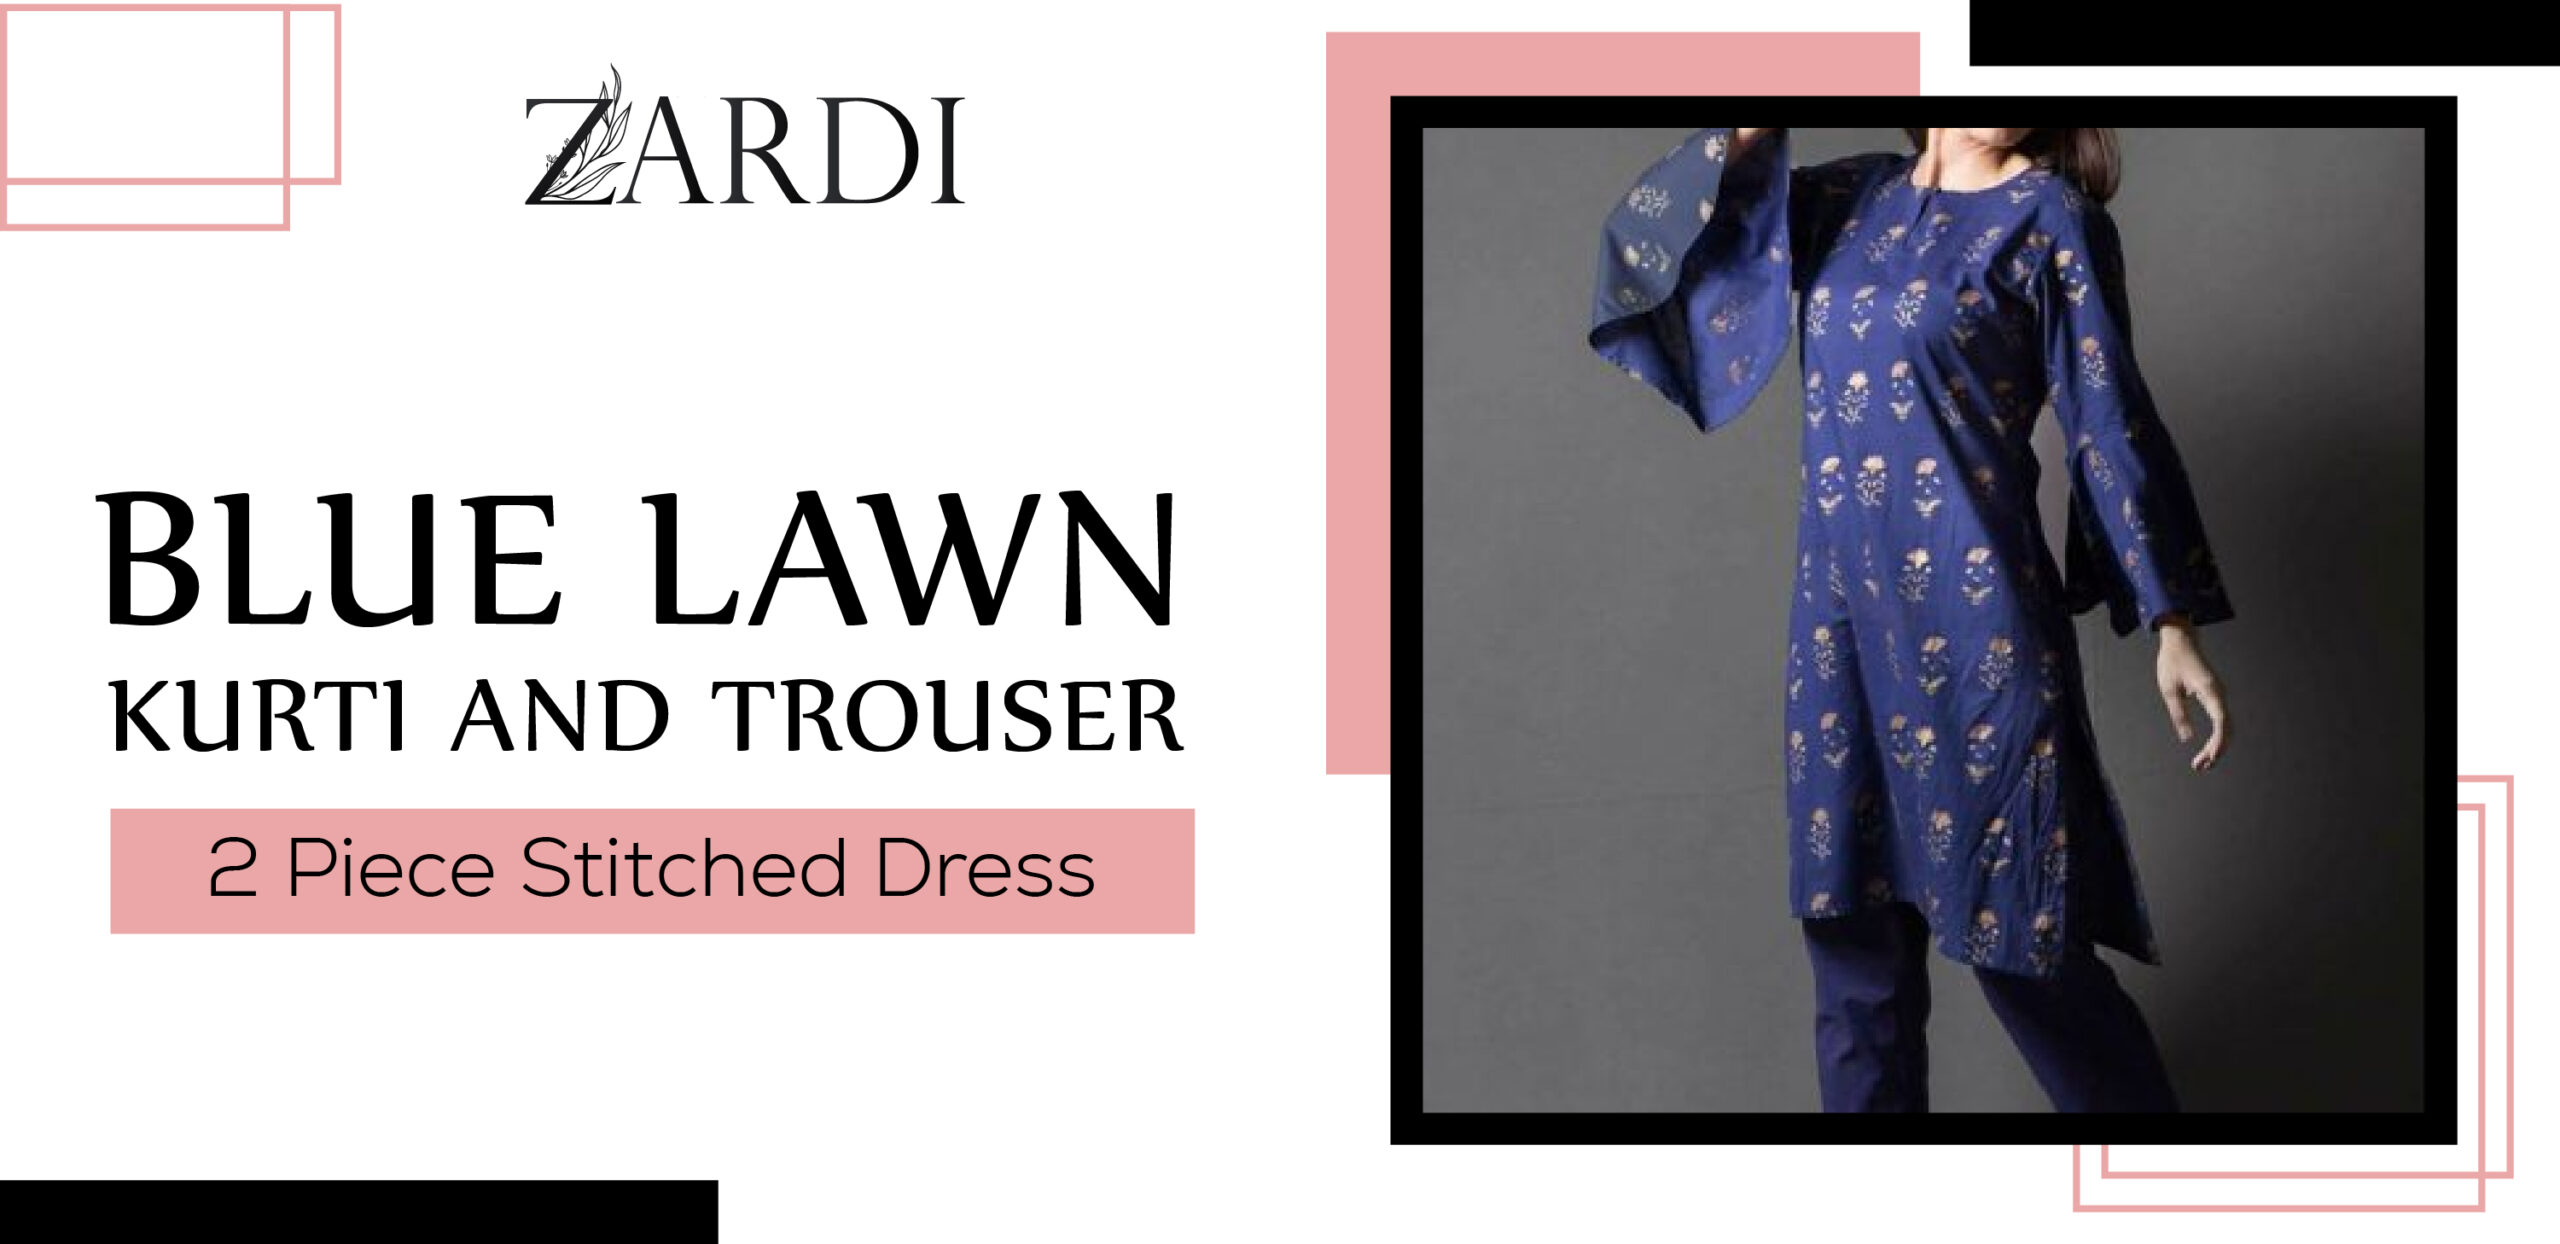 Blue Lawn Kurti And Trouser 2 Pieces Stitched Dress